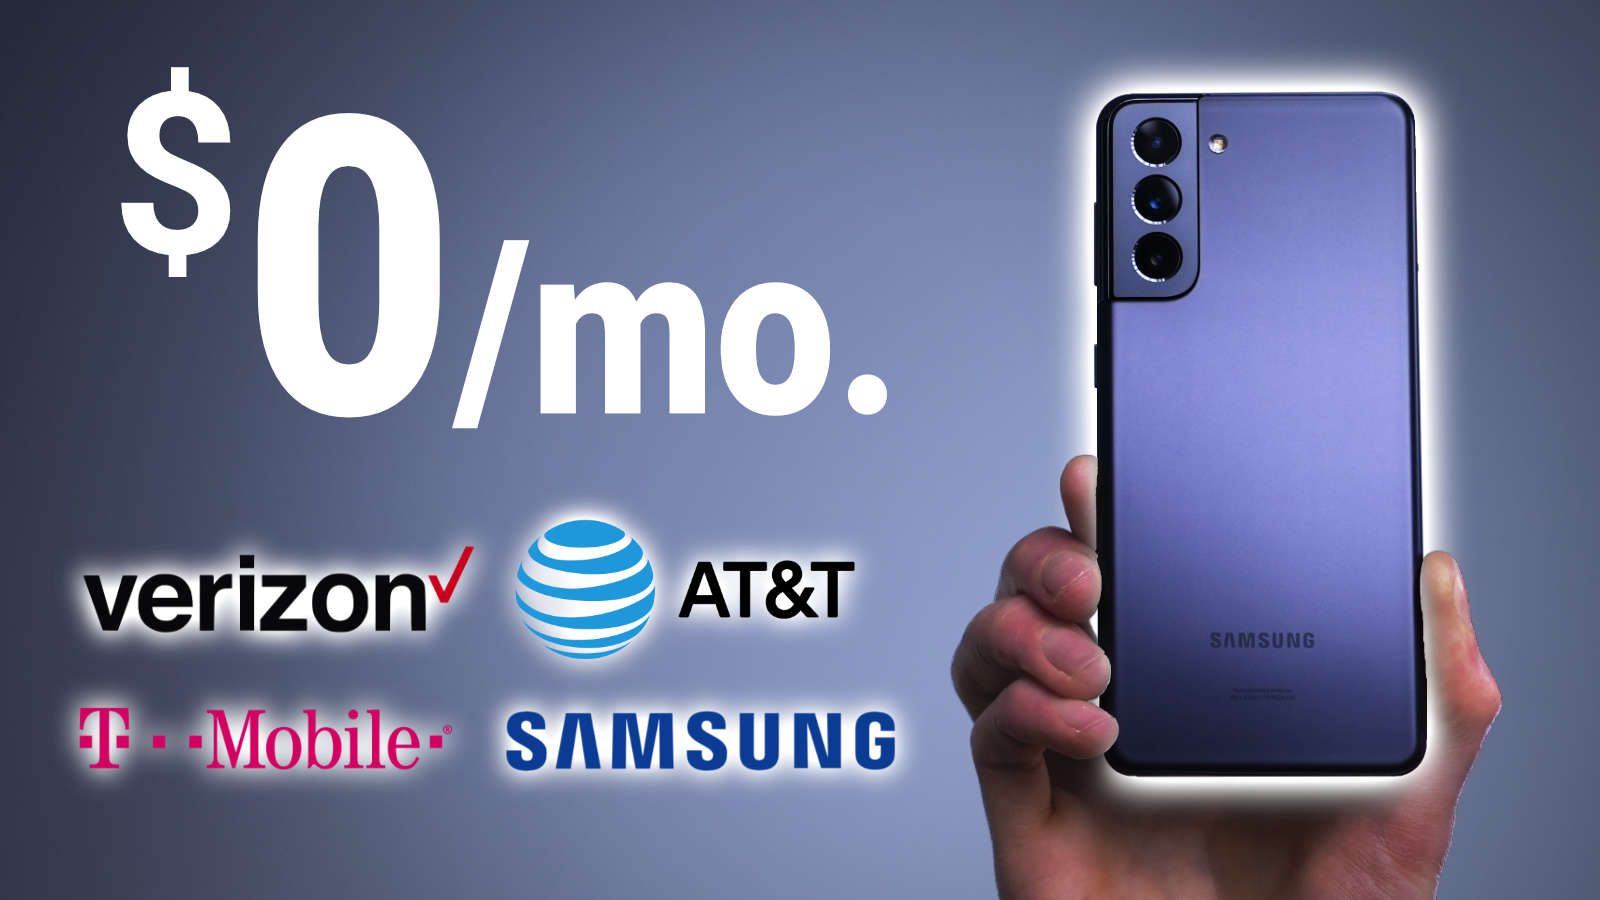 hand holding Galaxy S21 next to Verizon, AT&T, T-Mobile, and Samsung logos